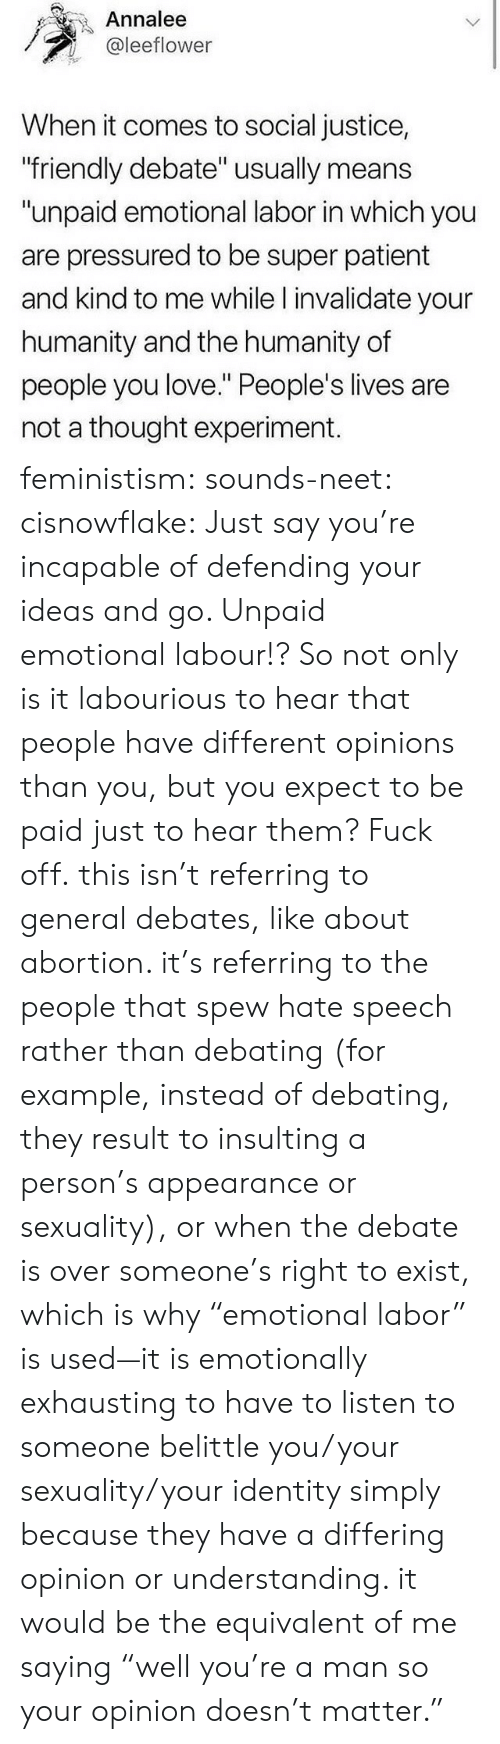 """debates: Annalee  @leeflower  When it comes to social justice,  friendly debate"""" usually means  """"unpaid emotional labor in which you  are pressured to be super patient  and kind to me while l invalidate your  humanity and the humanity of  people you love."""" People's lives are  not a thought experiment. feministism: sounds-neet:  cisnowflake:  Just say you're incapable of defending your ideas and go.   Unpaid emotional labour!? So not only is it labourious to hear that people have different opinions than you, but you expect to be paid just to hear them? Fuck off.  this isn't referring to general debates, like about abortion. it's referring to the people that spew hate speech rather than debating (for example, instead of debating, they result to insulting a person's appearance or sexuality), or when the debate is over someone's right to exist, which is why """"emotional labor"""" is used—it is emotionally exhausting to have to listen to someone belittle you/your sexuality/your identity simply because they have a differing opinion or understanding. it would be the equivalent of me saying """"well you're a man so your opinion doesn't matter."""""""